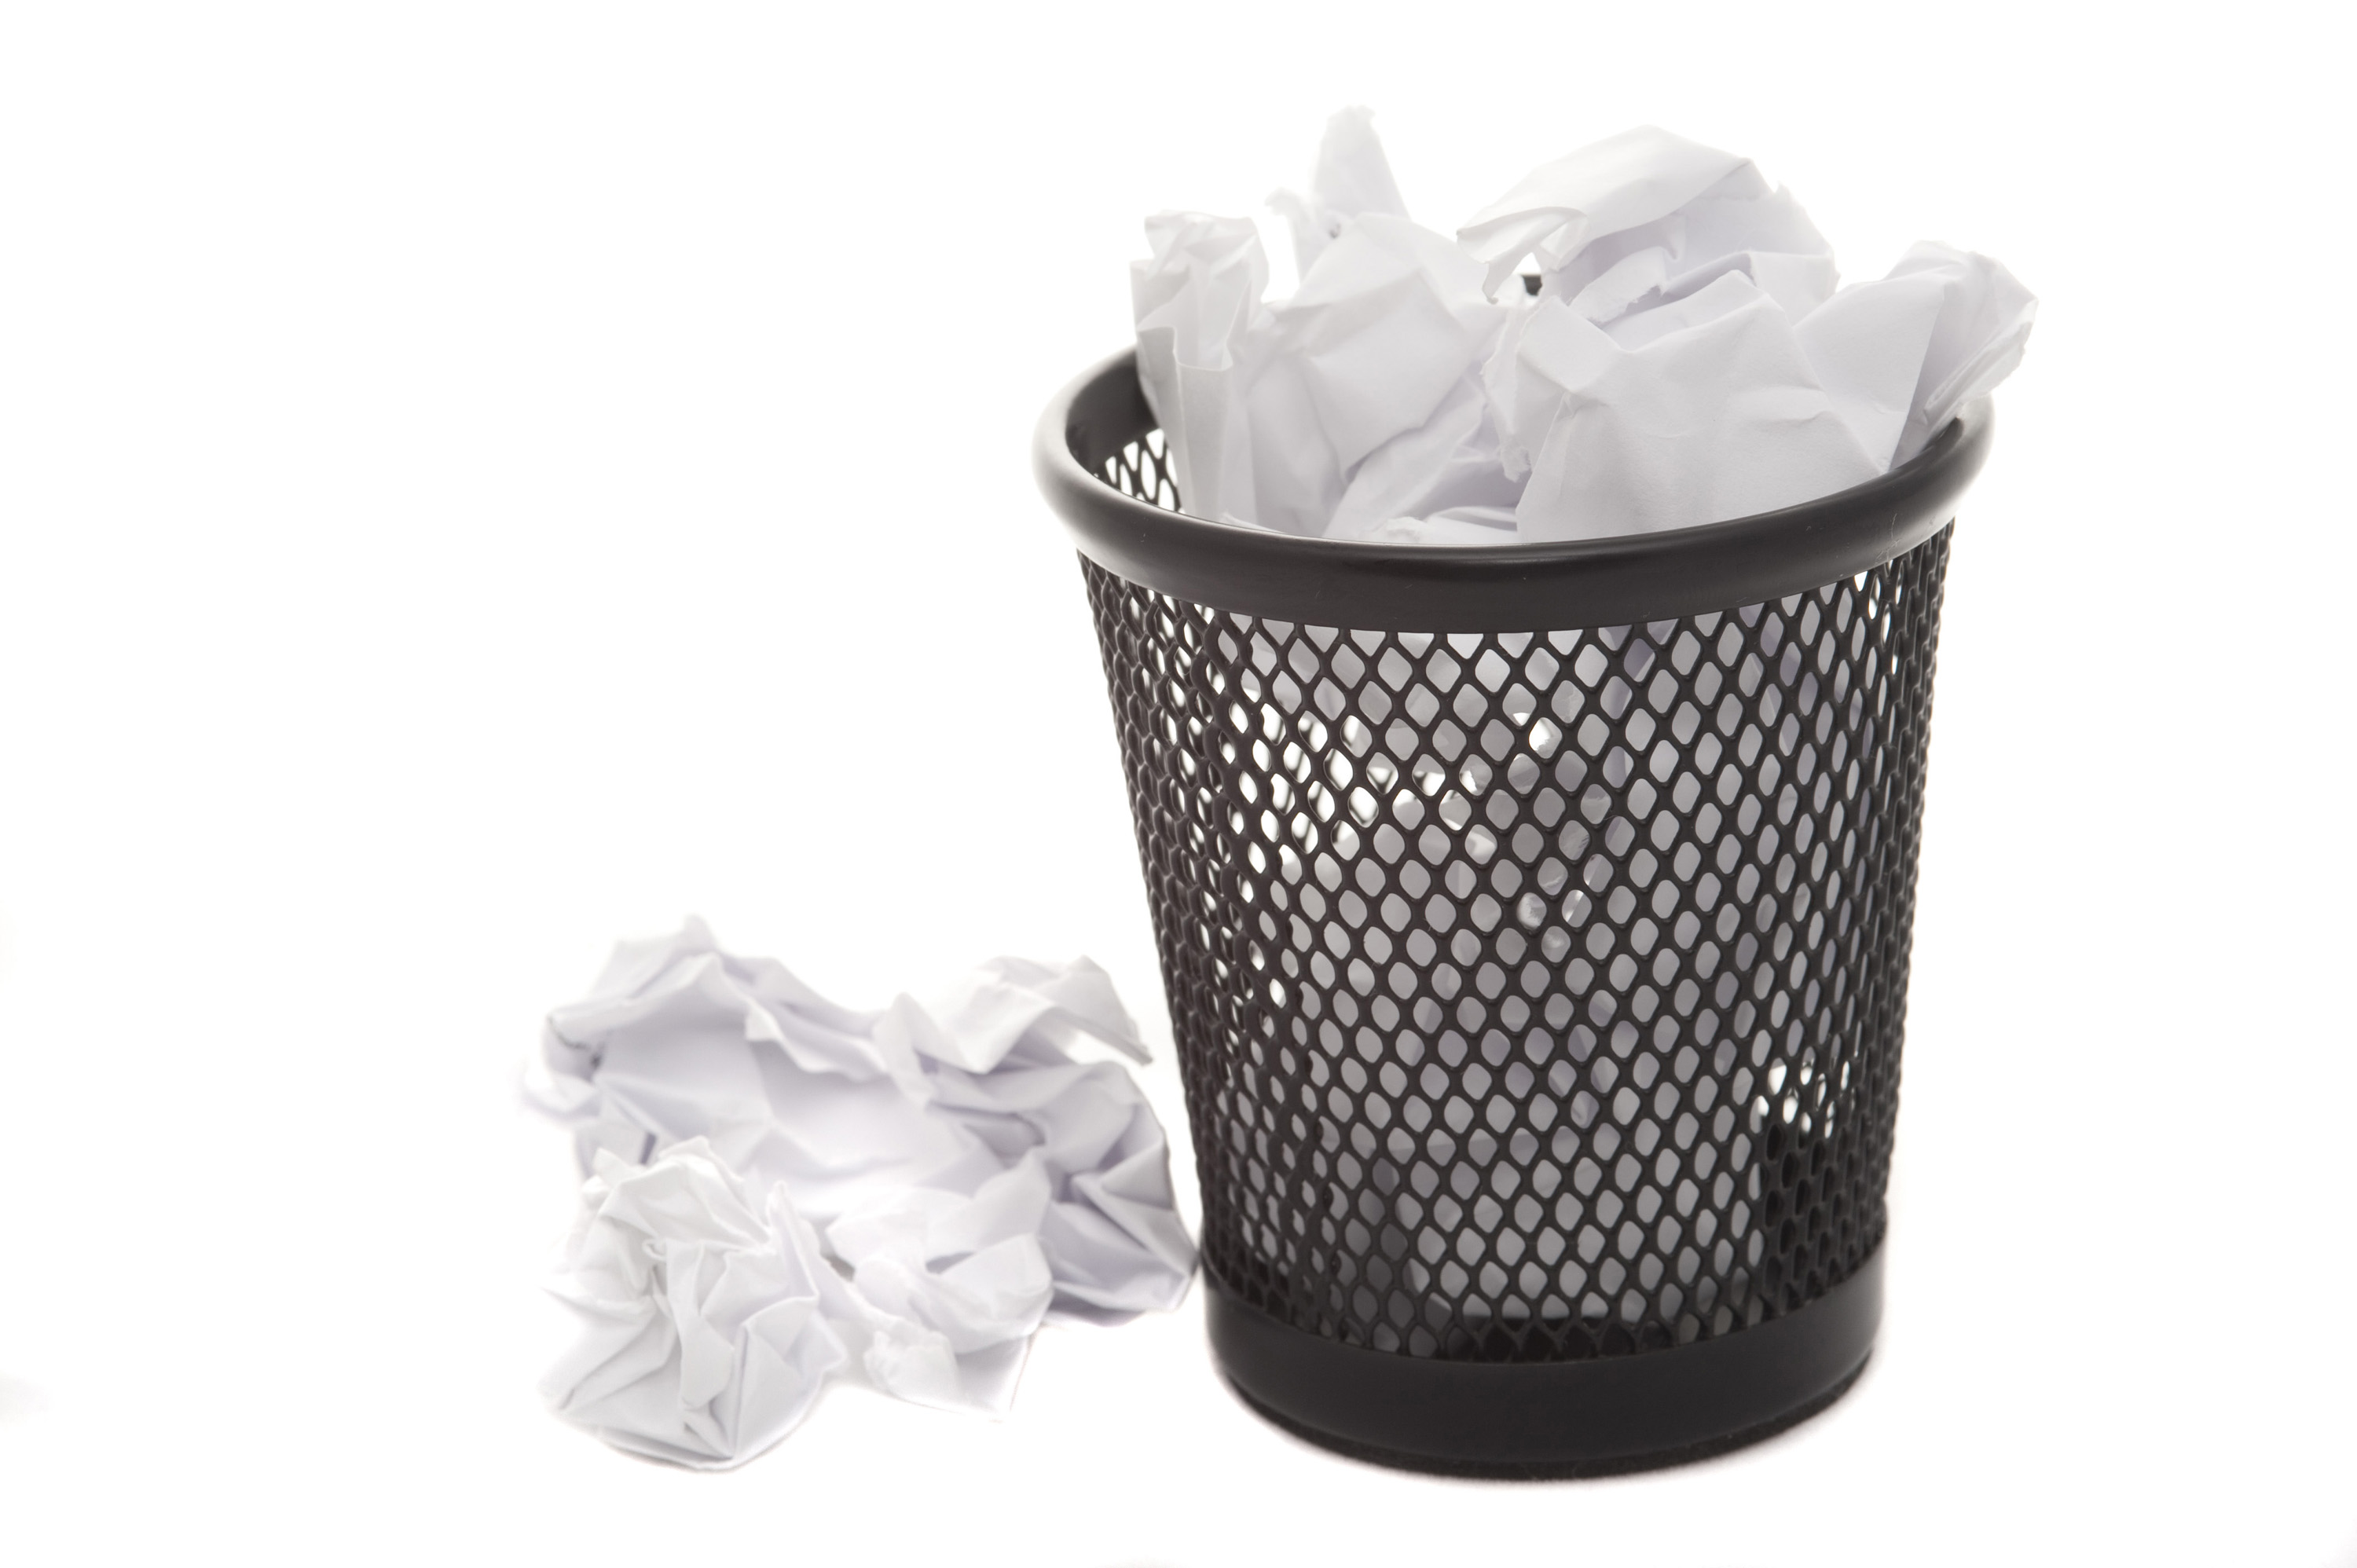 Wastepaper Basket Interesting Free Image Of Wastepaper Basket Filled With Crumpled Paper Design Ideas